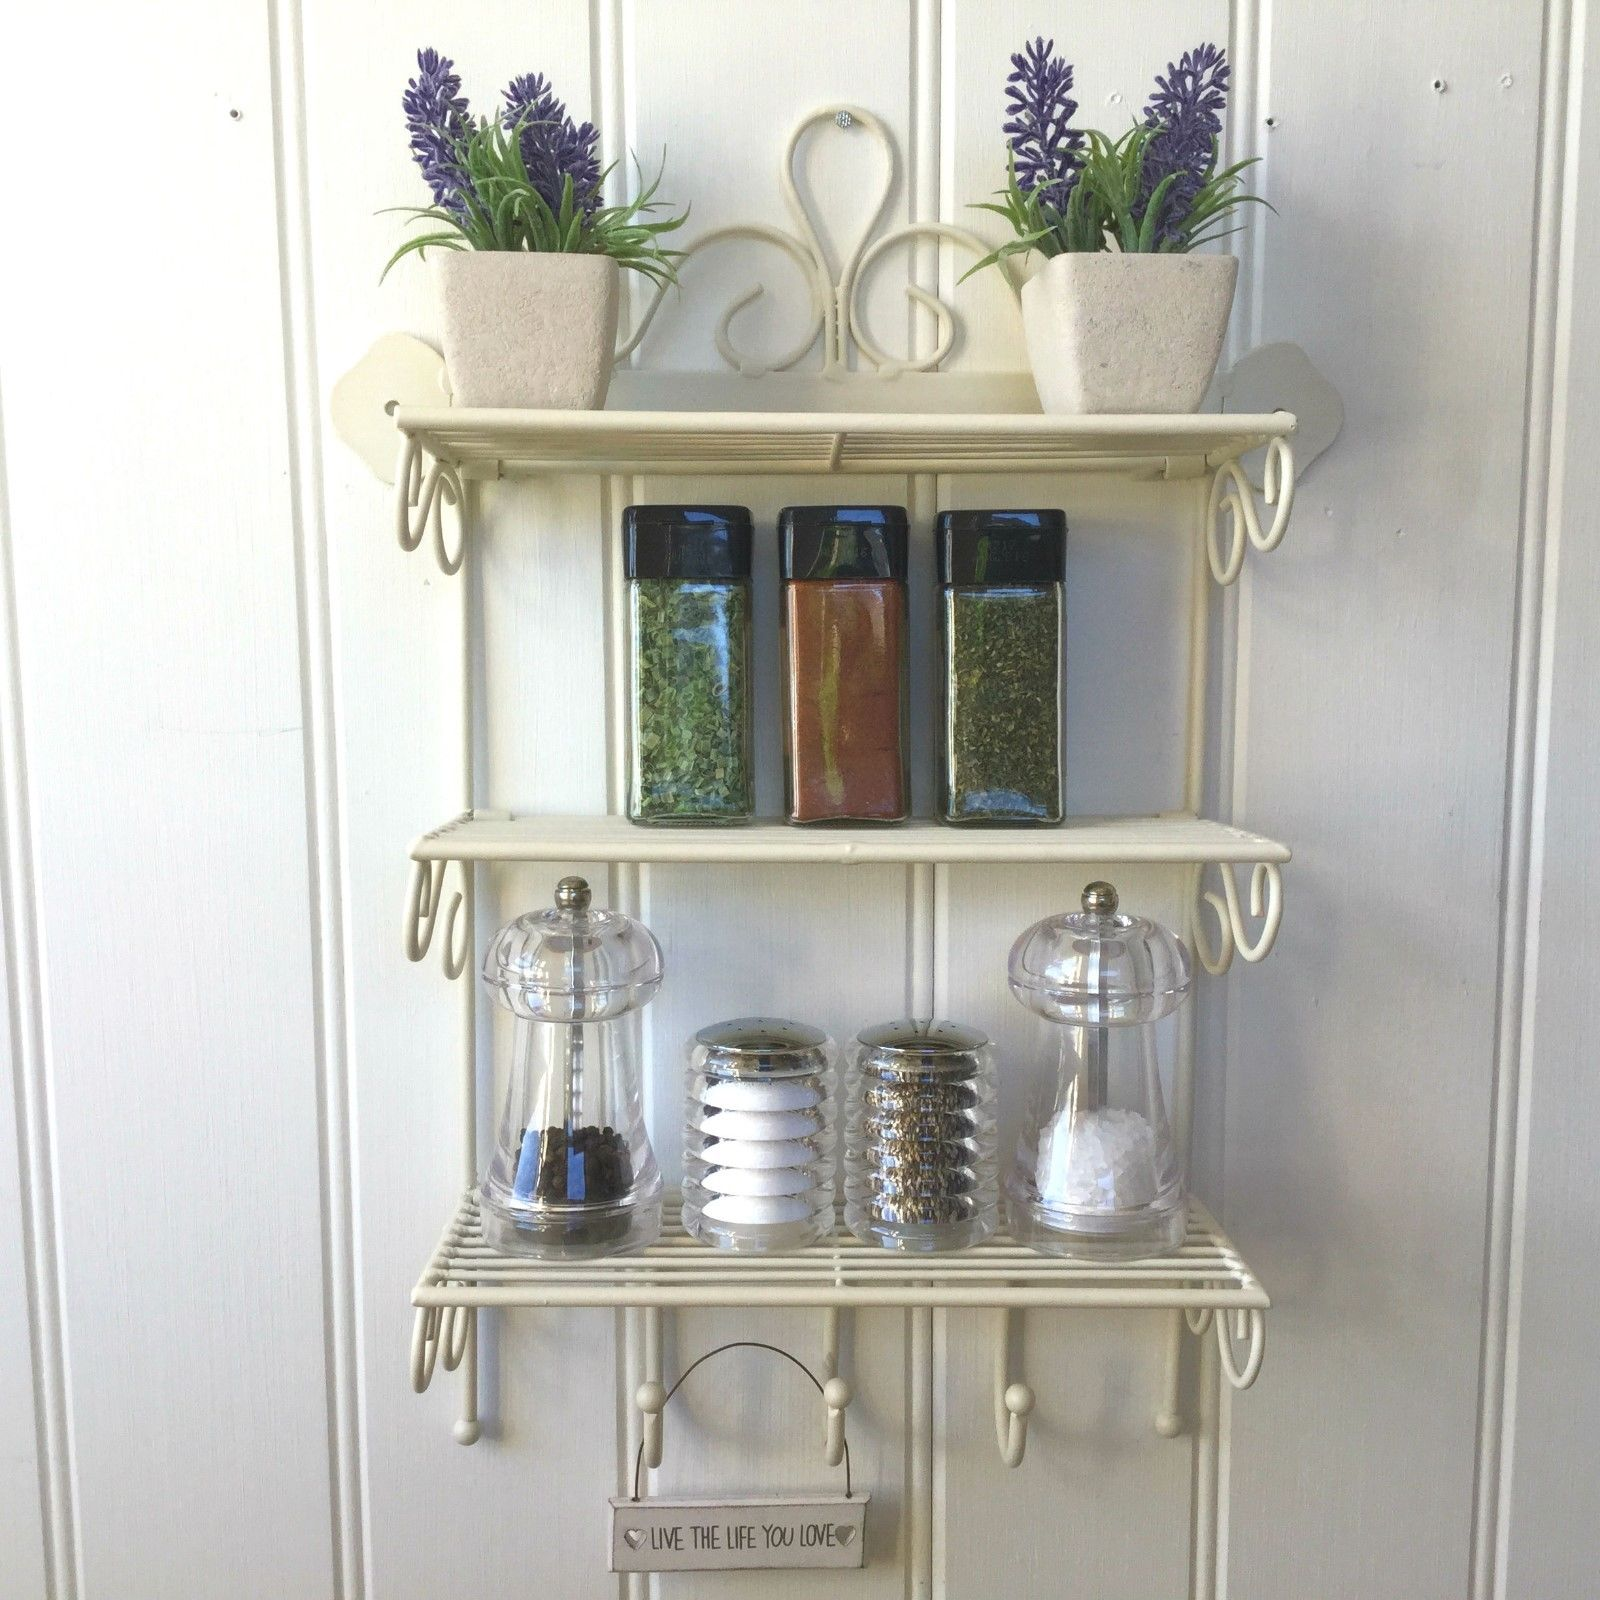 Kitchen Shelf Metal: Shabby Chic Metal Wall Shelf Unit Hooks Storage Kitchen